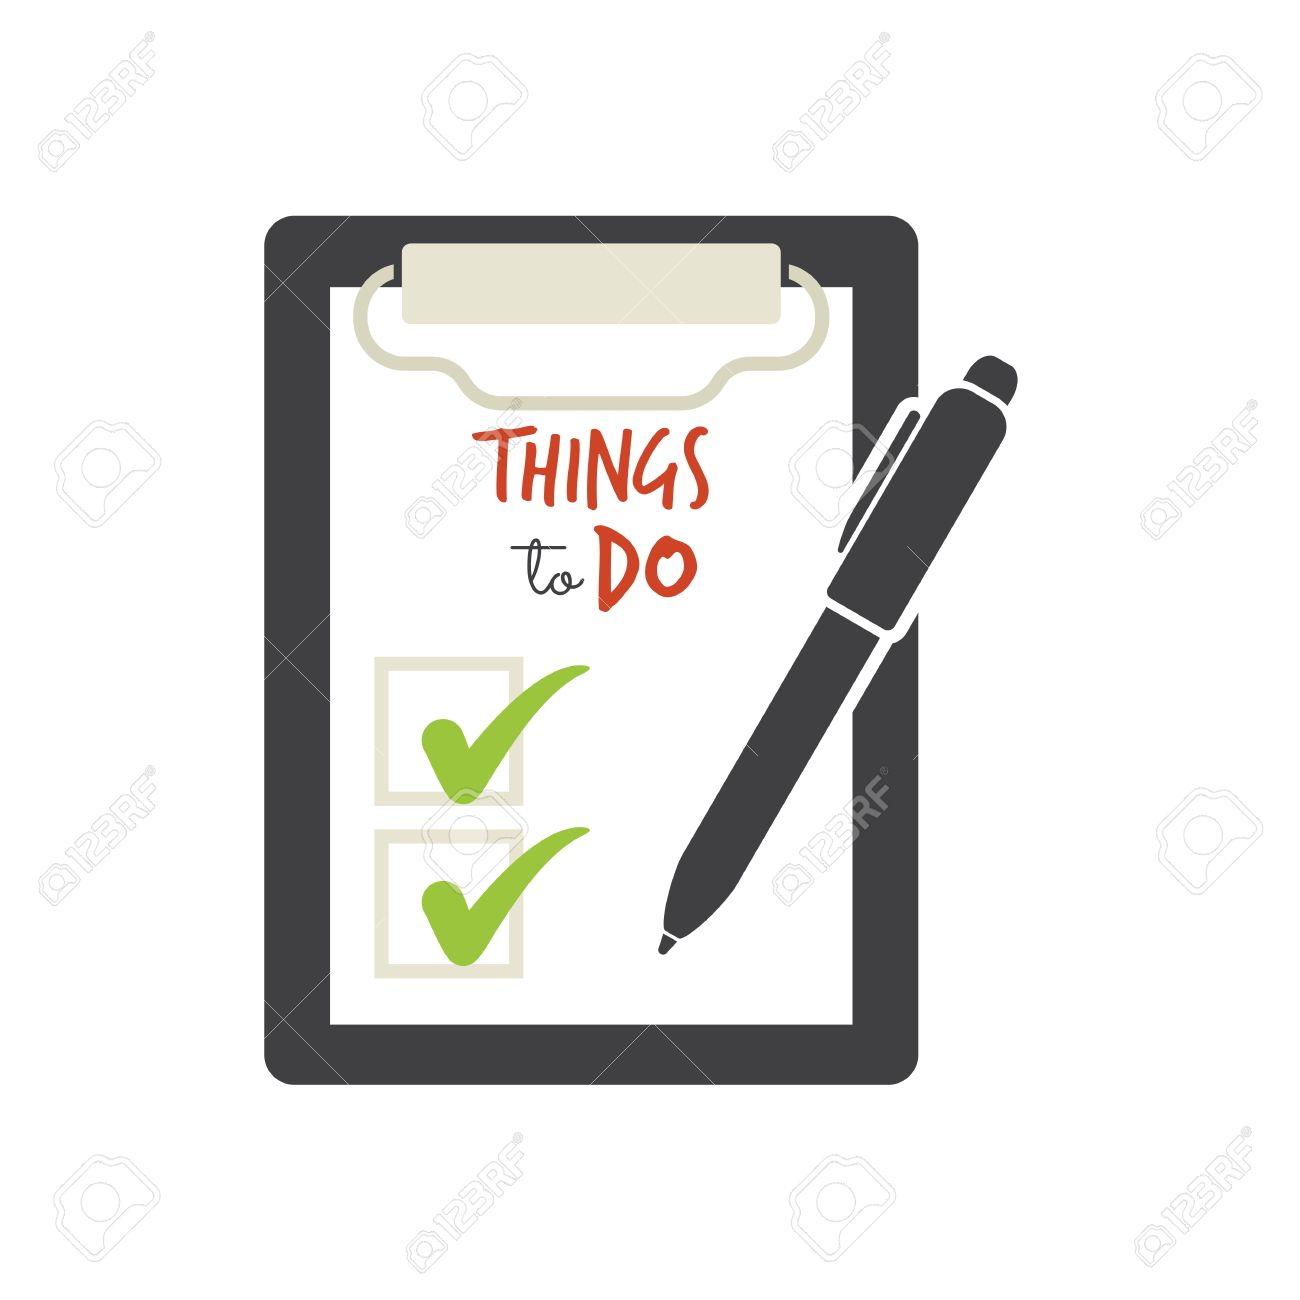 things to do - check list royalty free cliparts, vectors, and stock